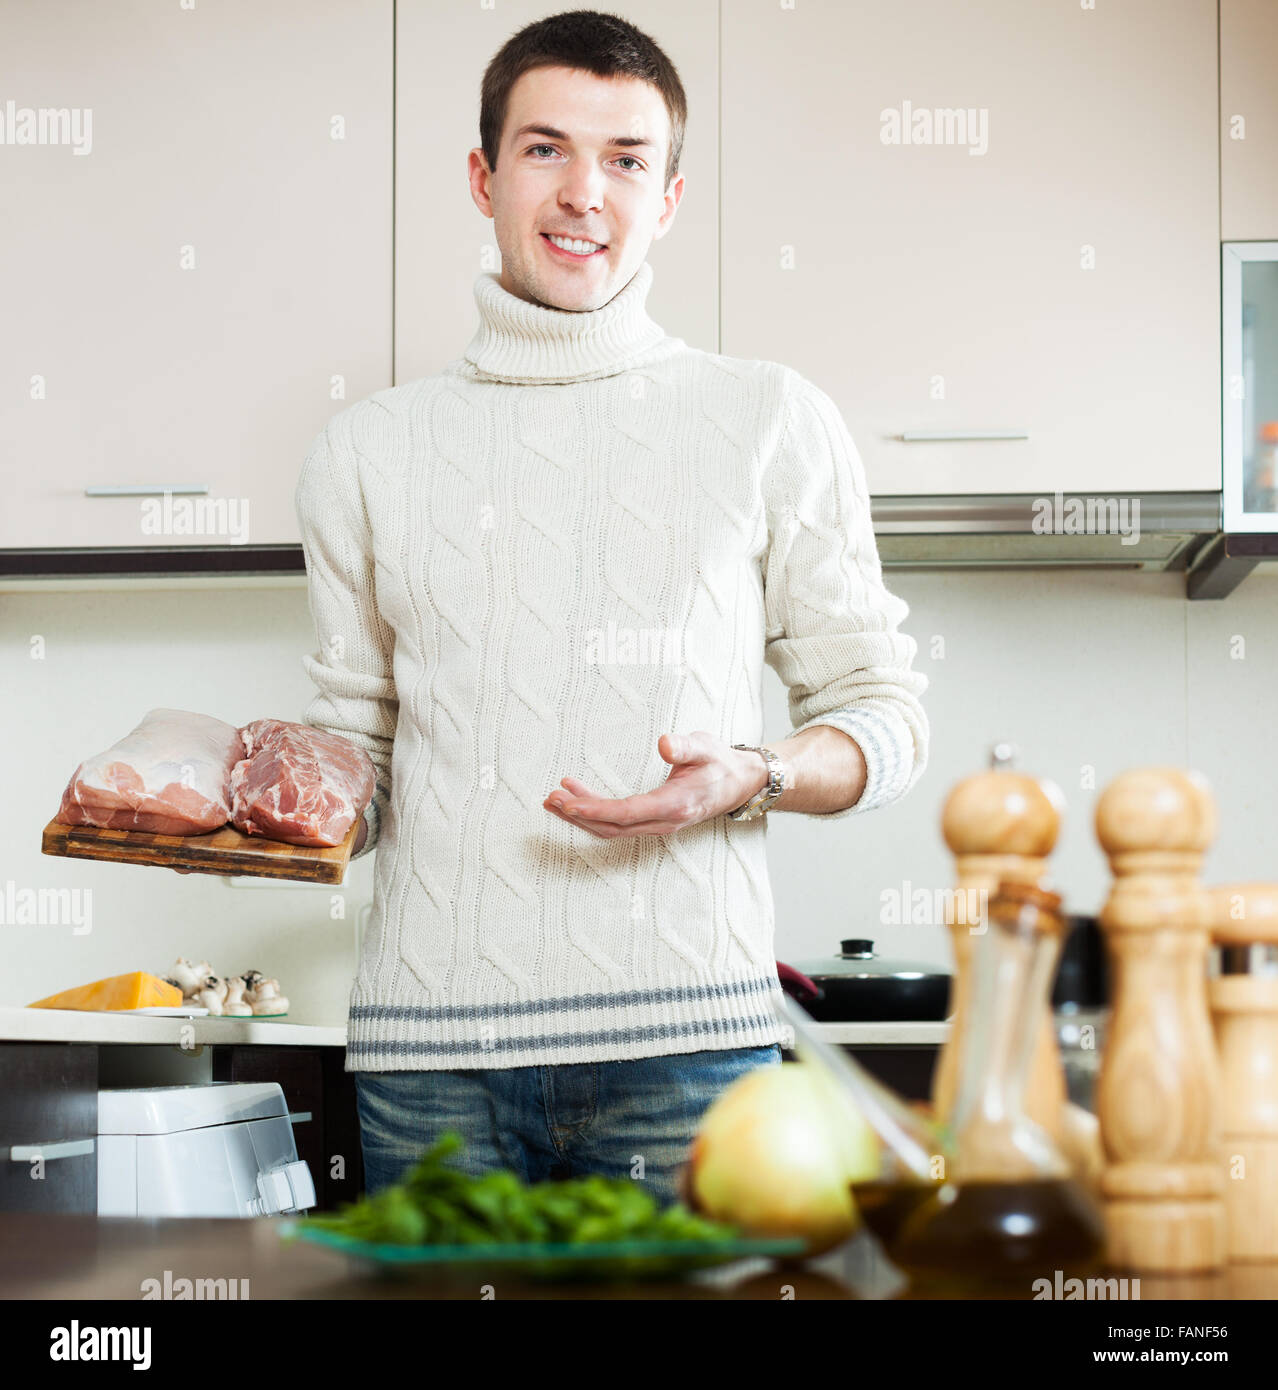 Home Kitchen Cooking Smiling Guy Cooking Meat At Home Kitchen Stock Photo Royalty Free